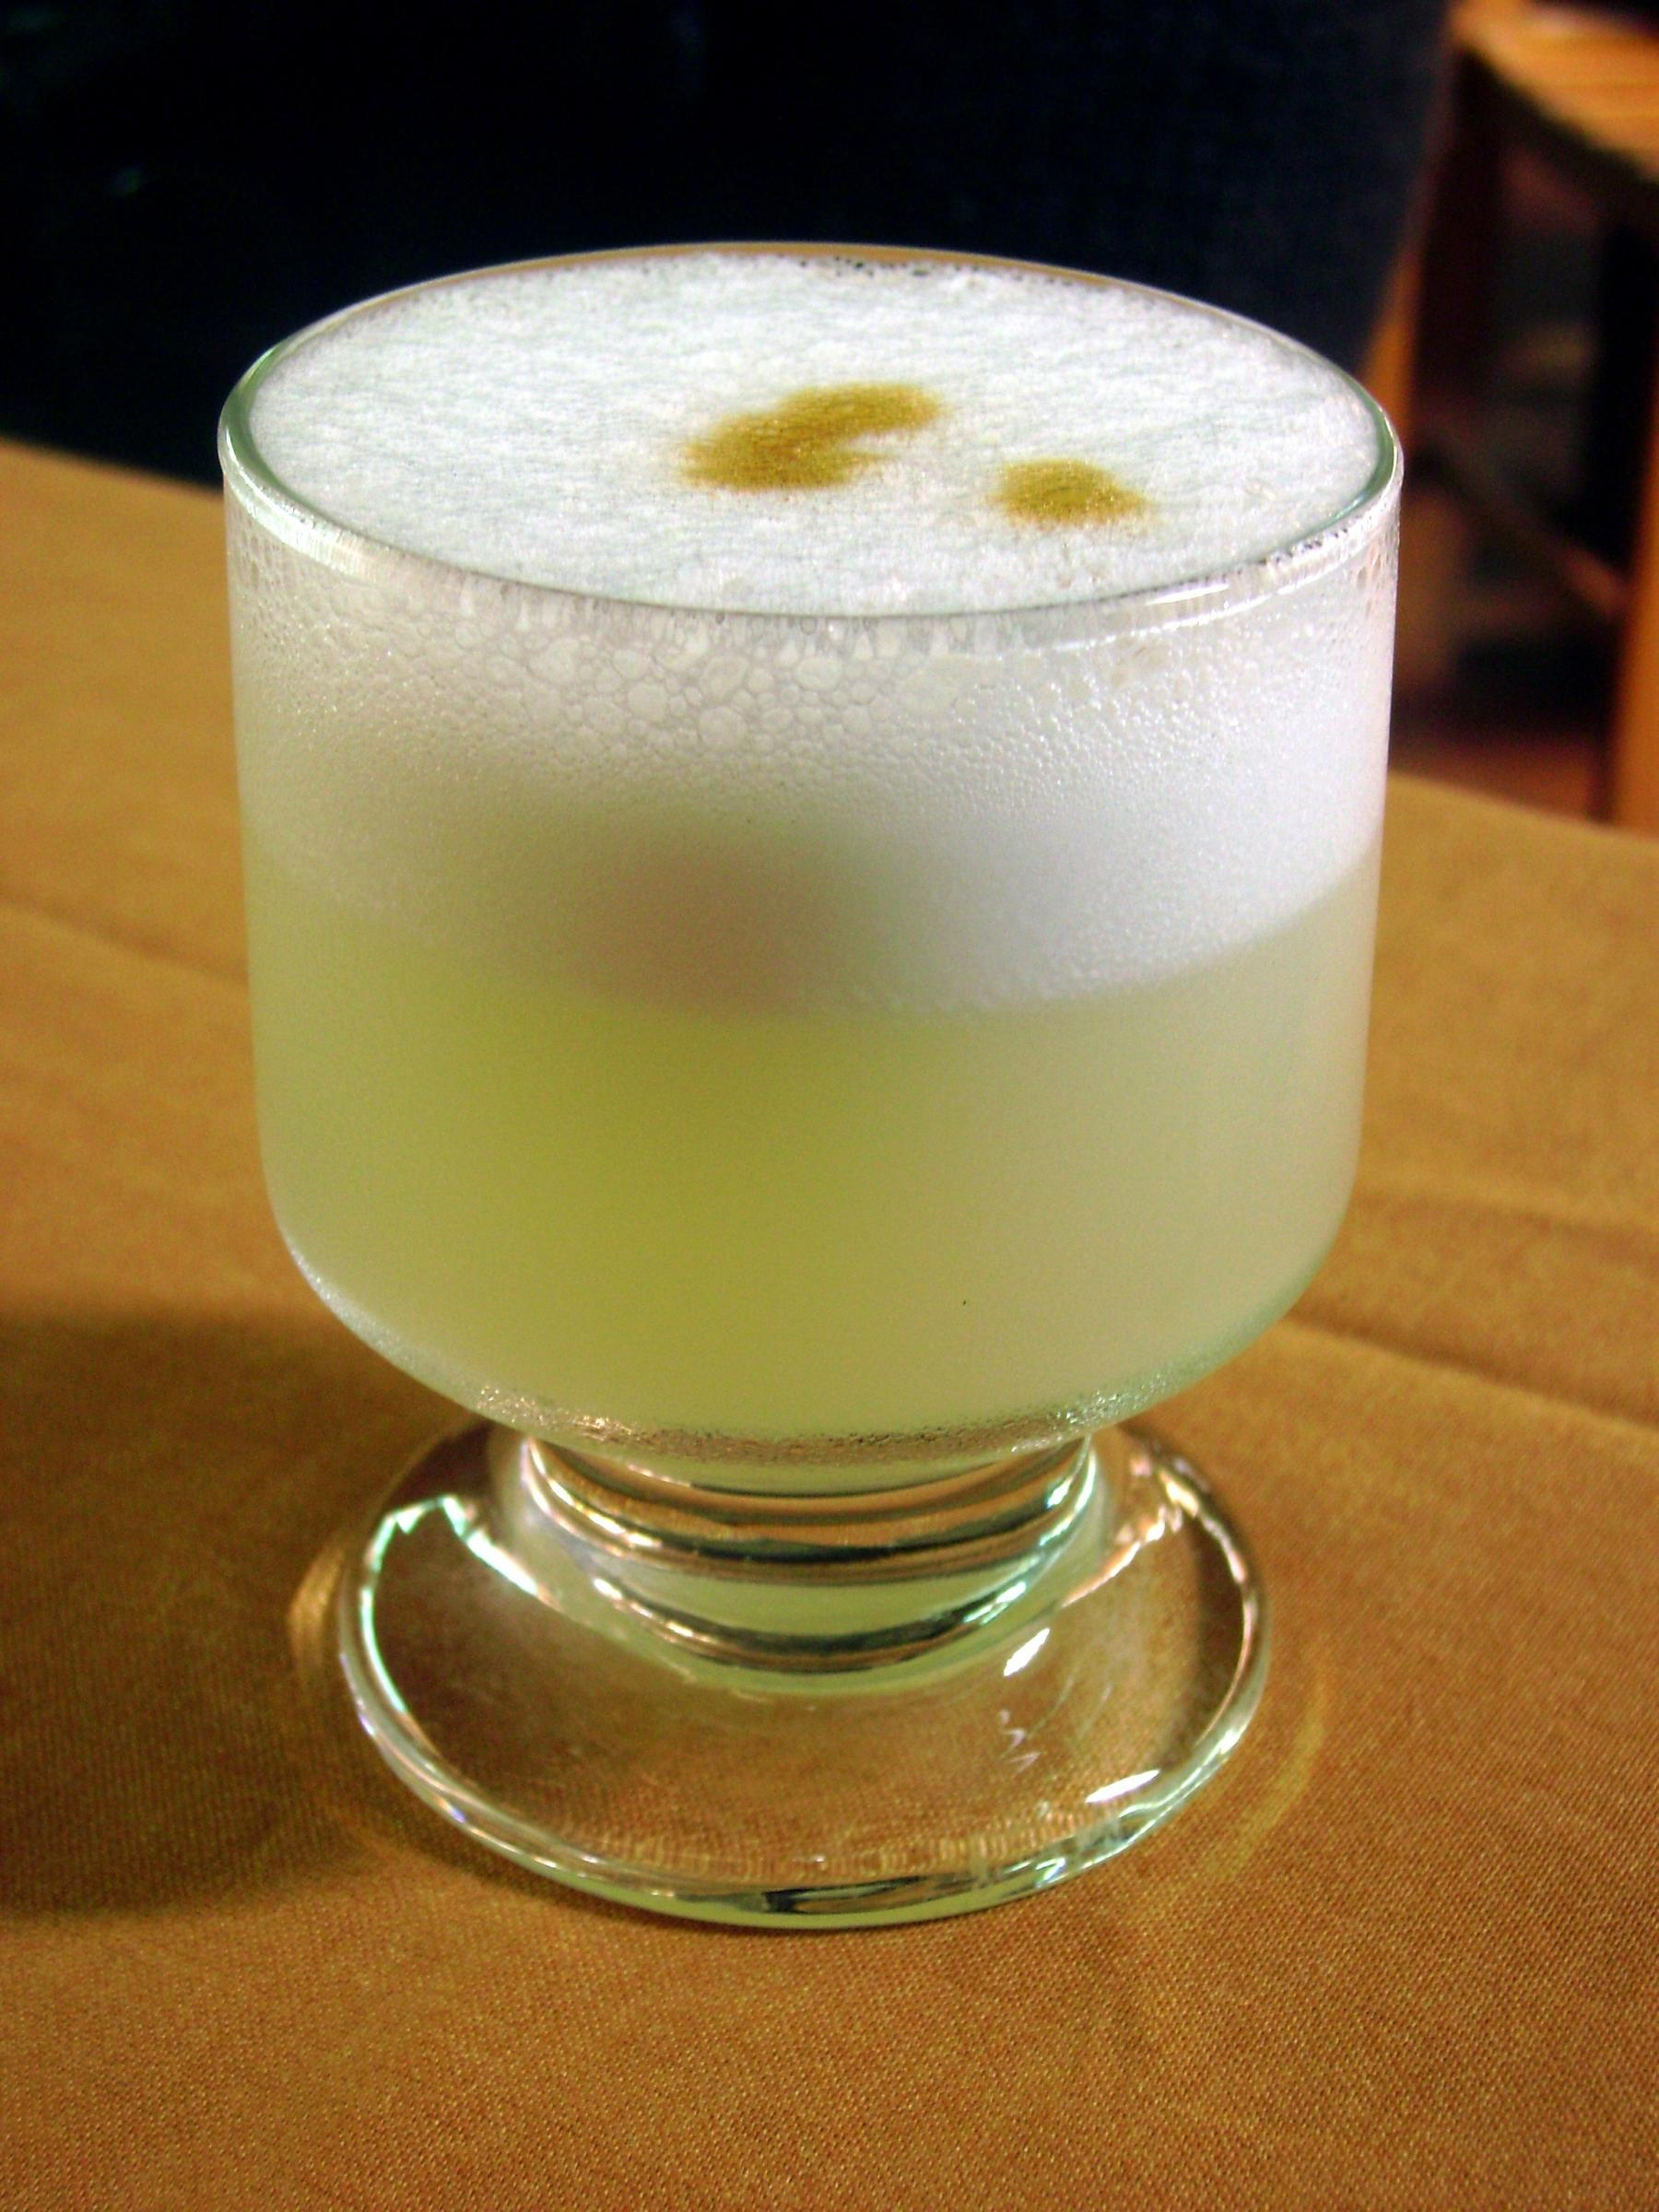 Pisco Sour (Credit: Dtarazona / CC BY-SA (https://creativecommons.org/licenses/by-sa/4.0)i)